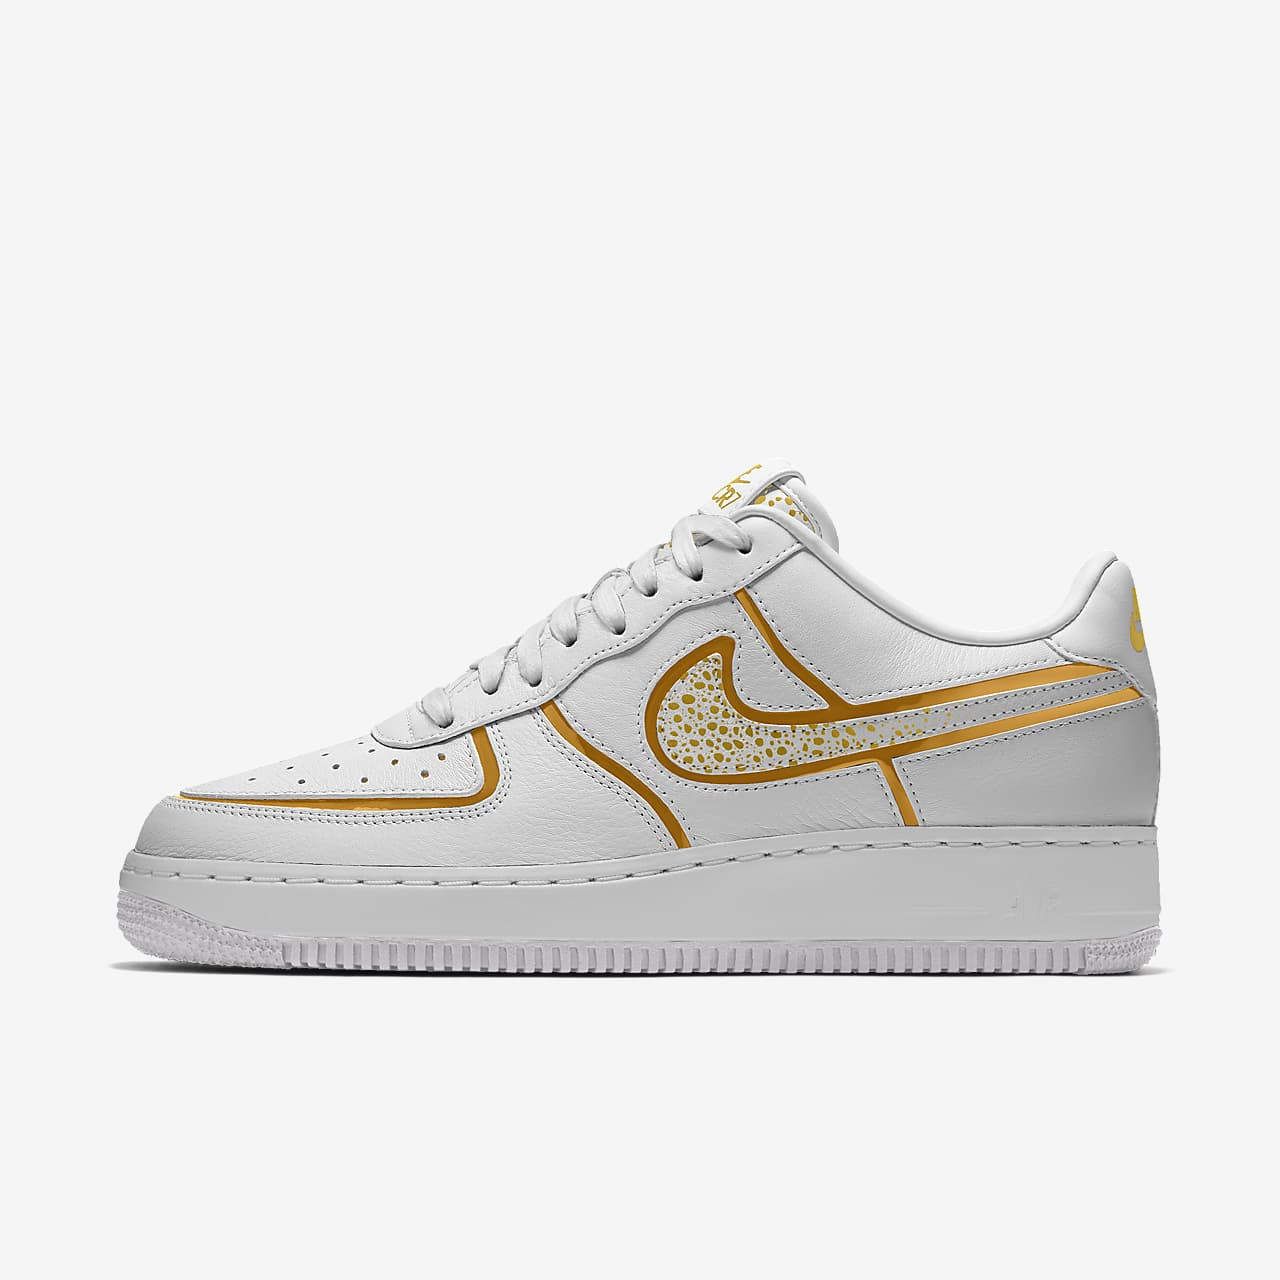 Sapatilhas personalizáveis Nike Air Force 1 Low CR7 By You